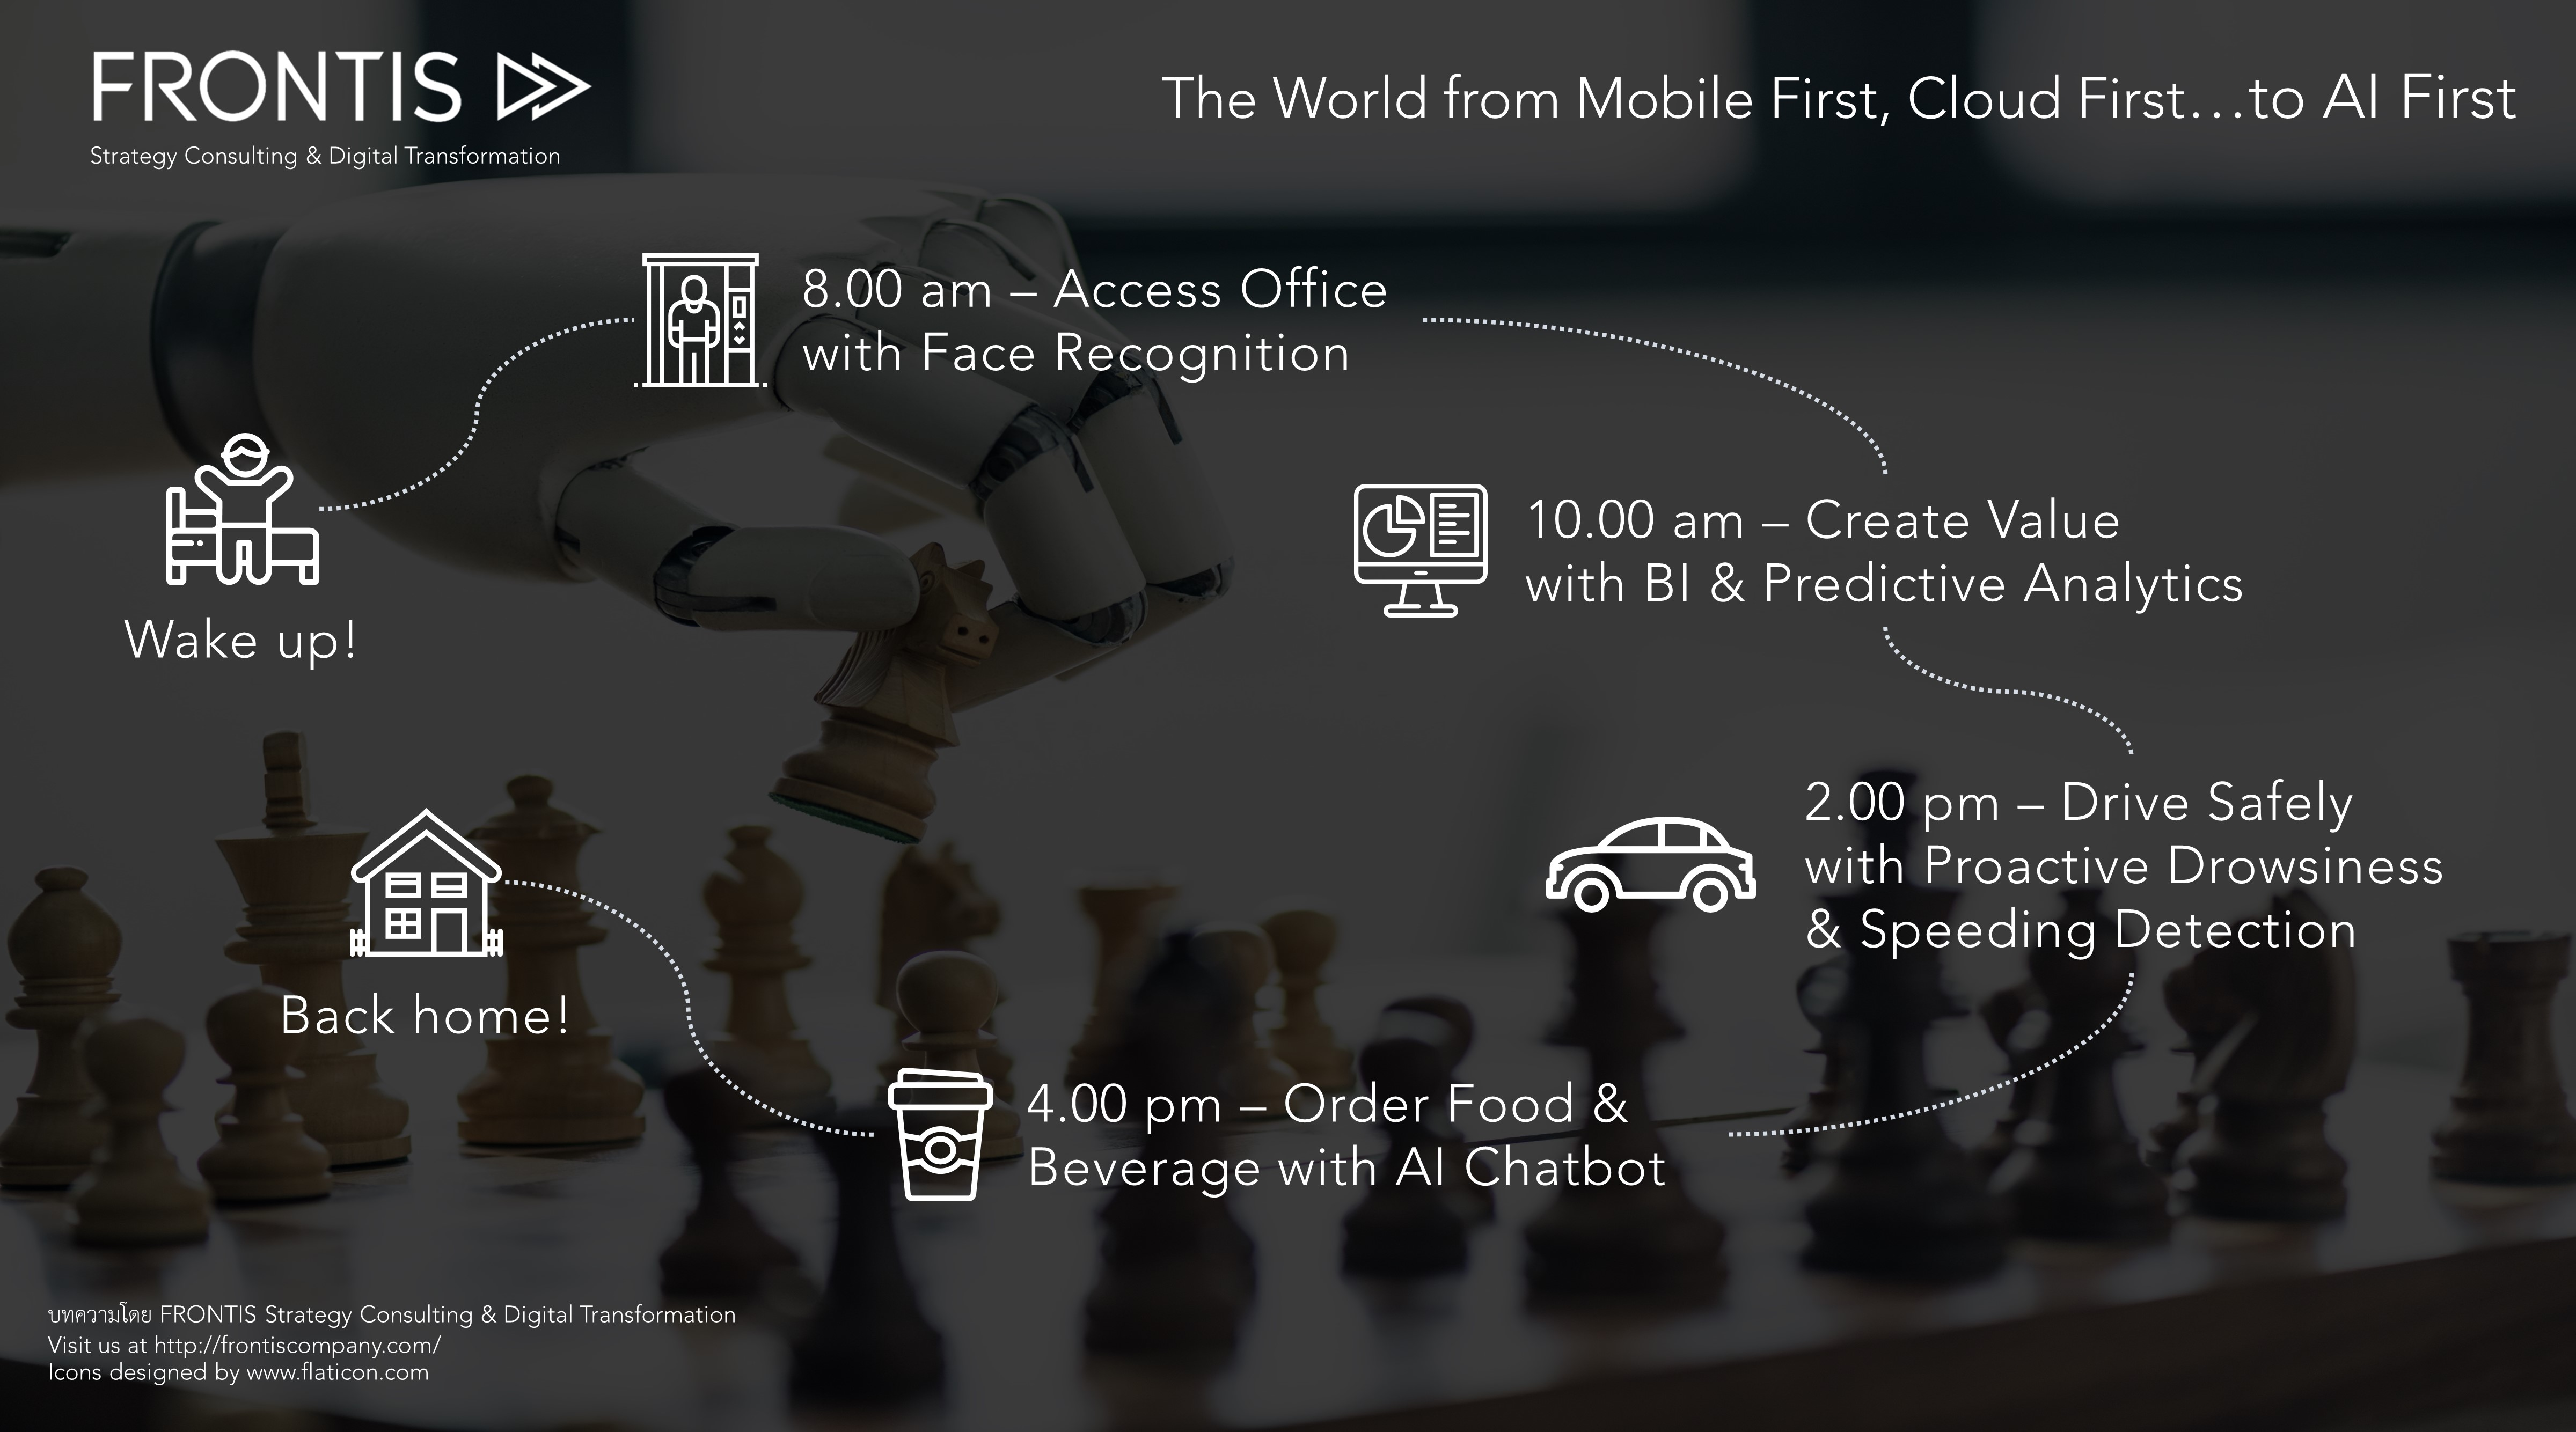 The World from Mobile First, Cloud First…to AI First